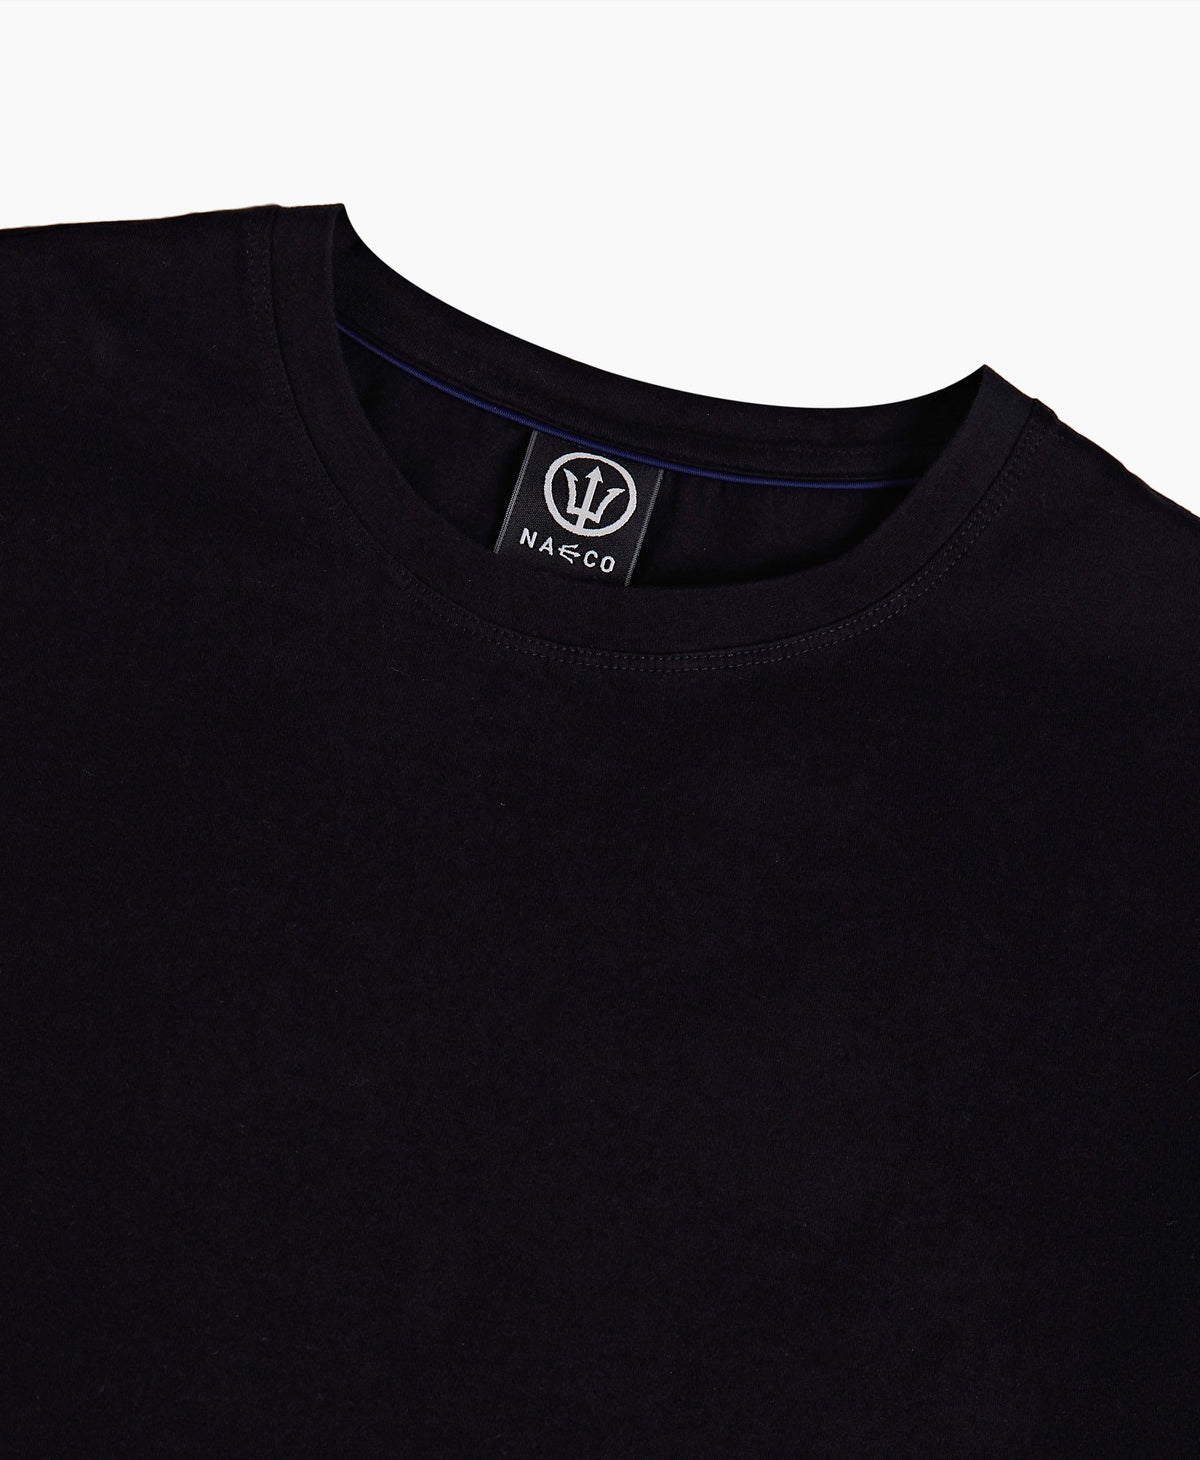 Bamboo Essential Tee - Orca Black